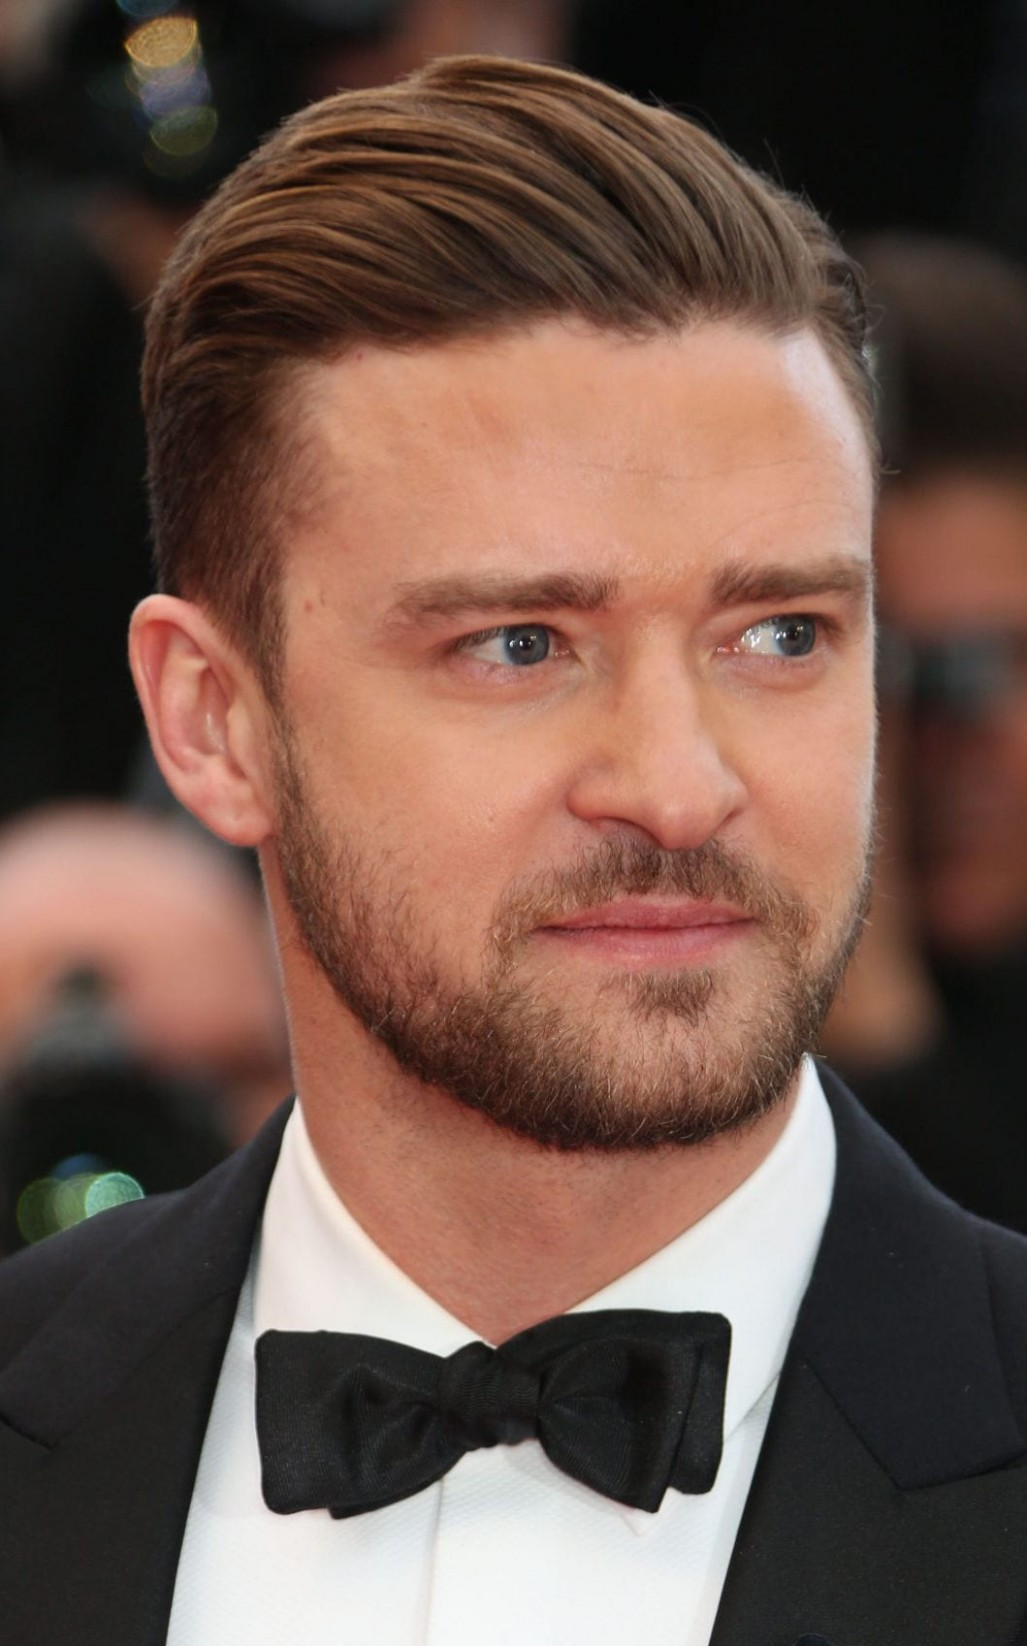 10 Selected Haircuts For Guys With Round Faces Haircut For Circle Face